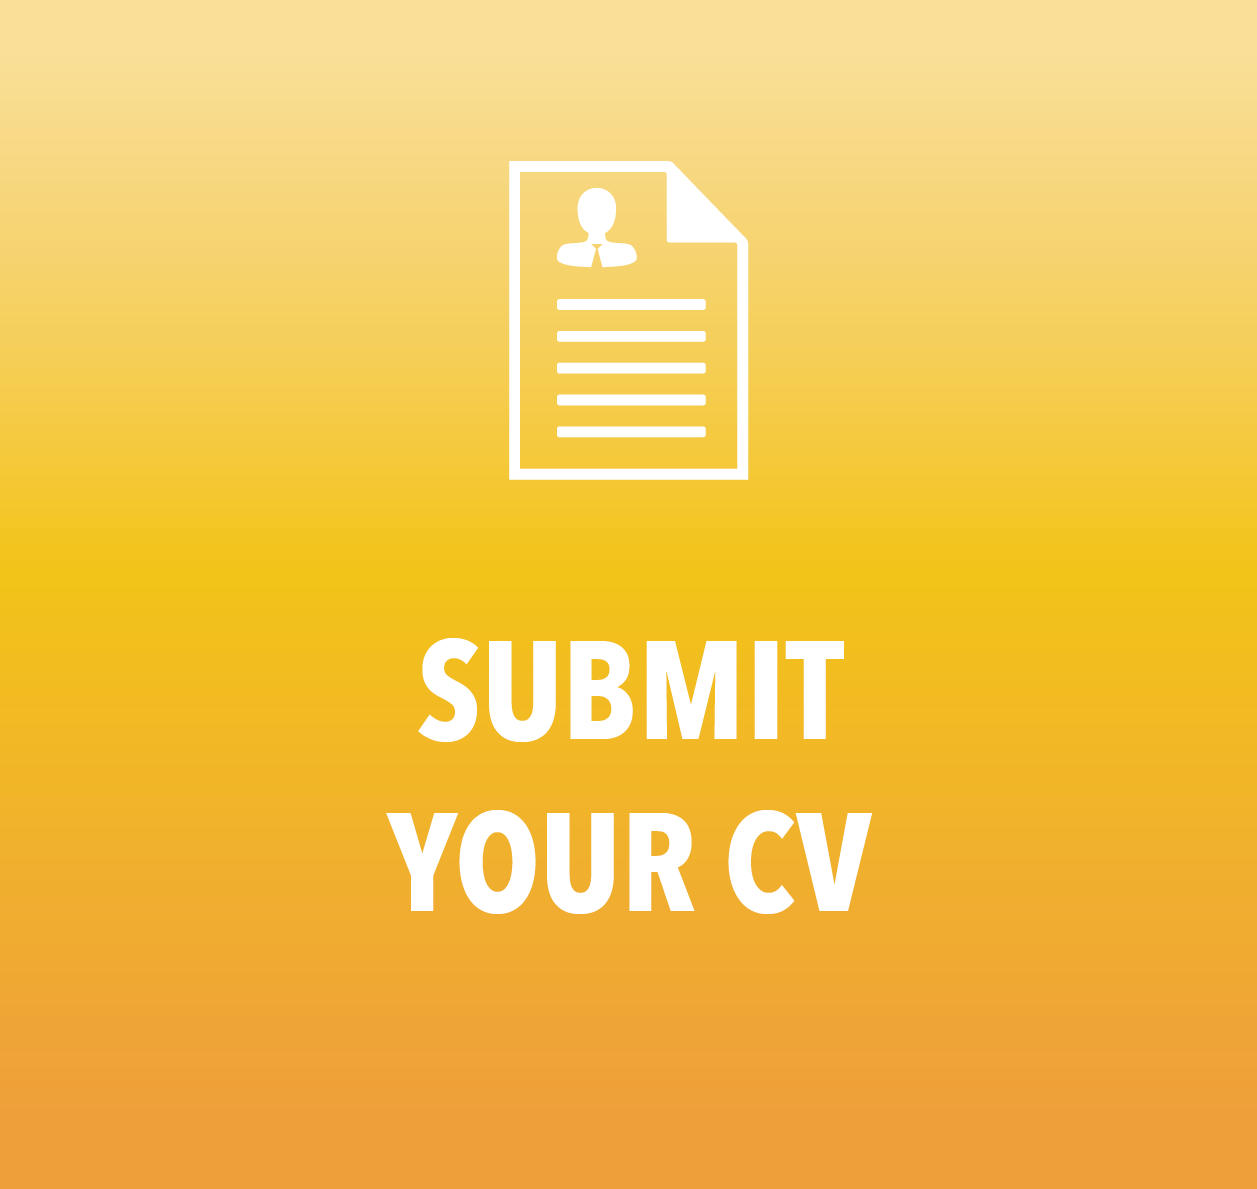 Submit your CV